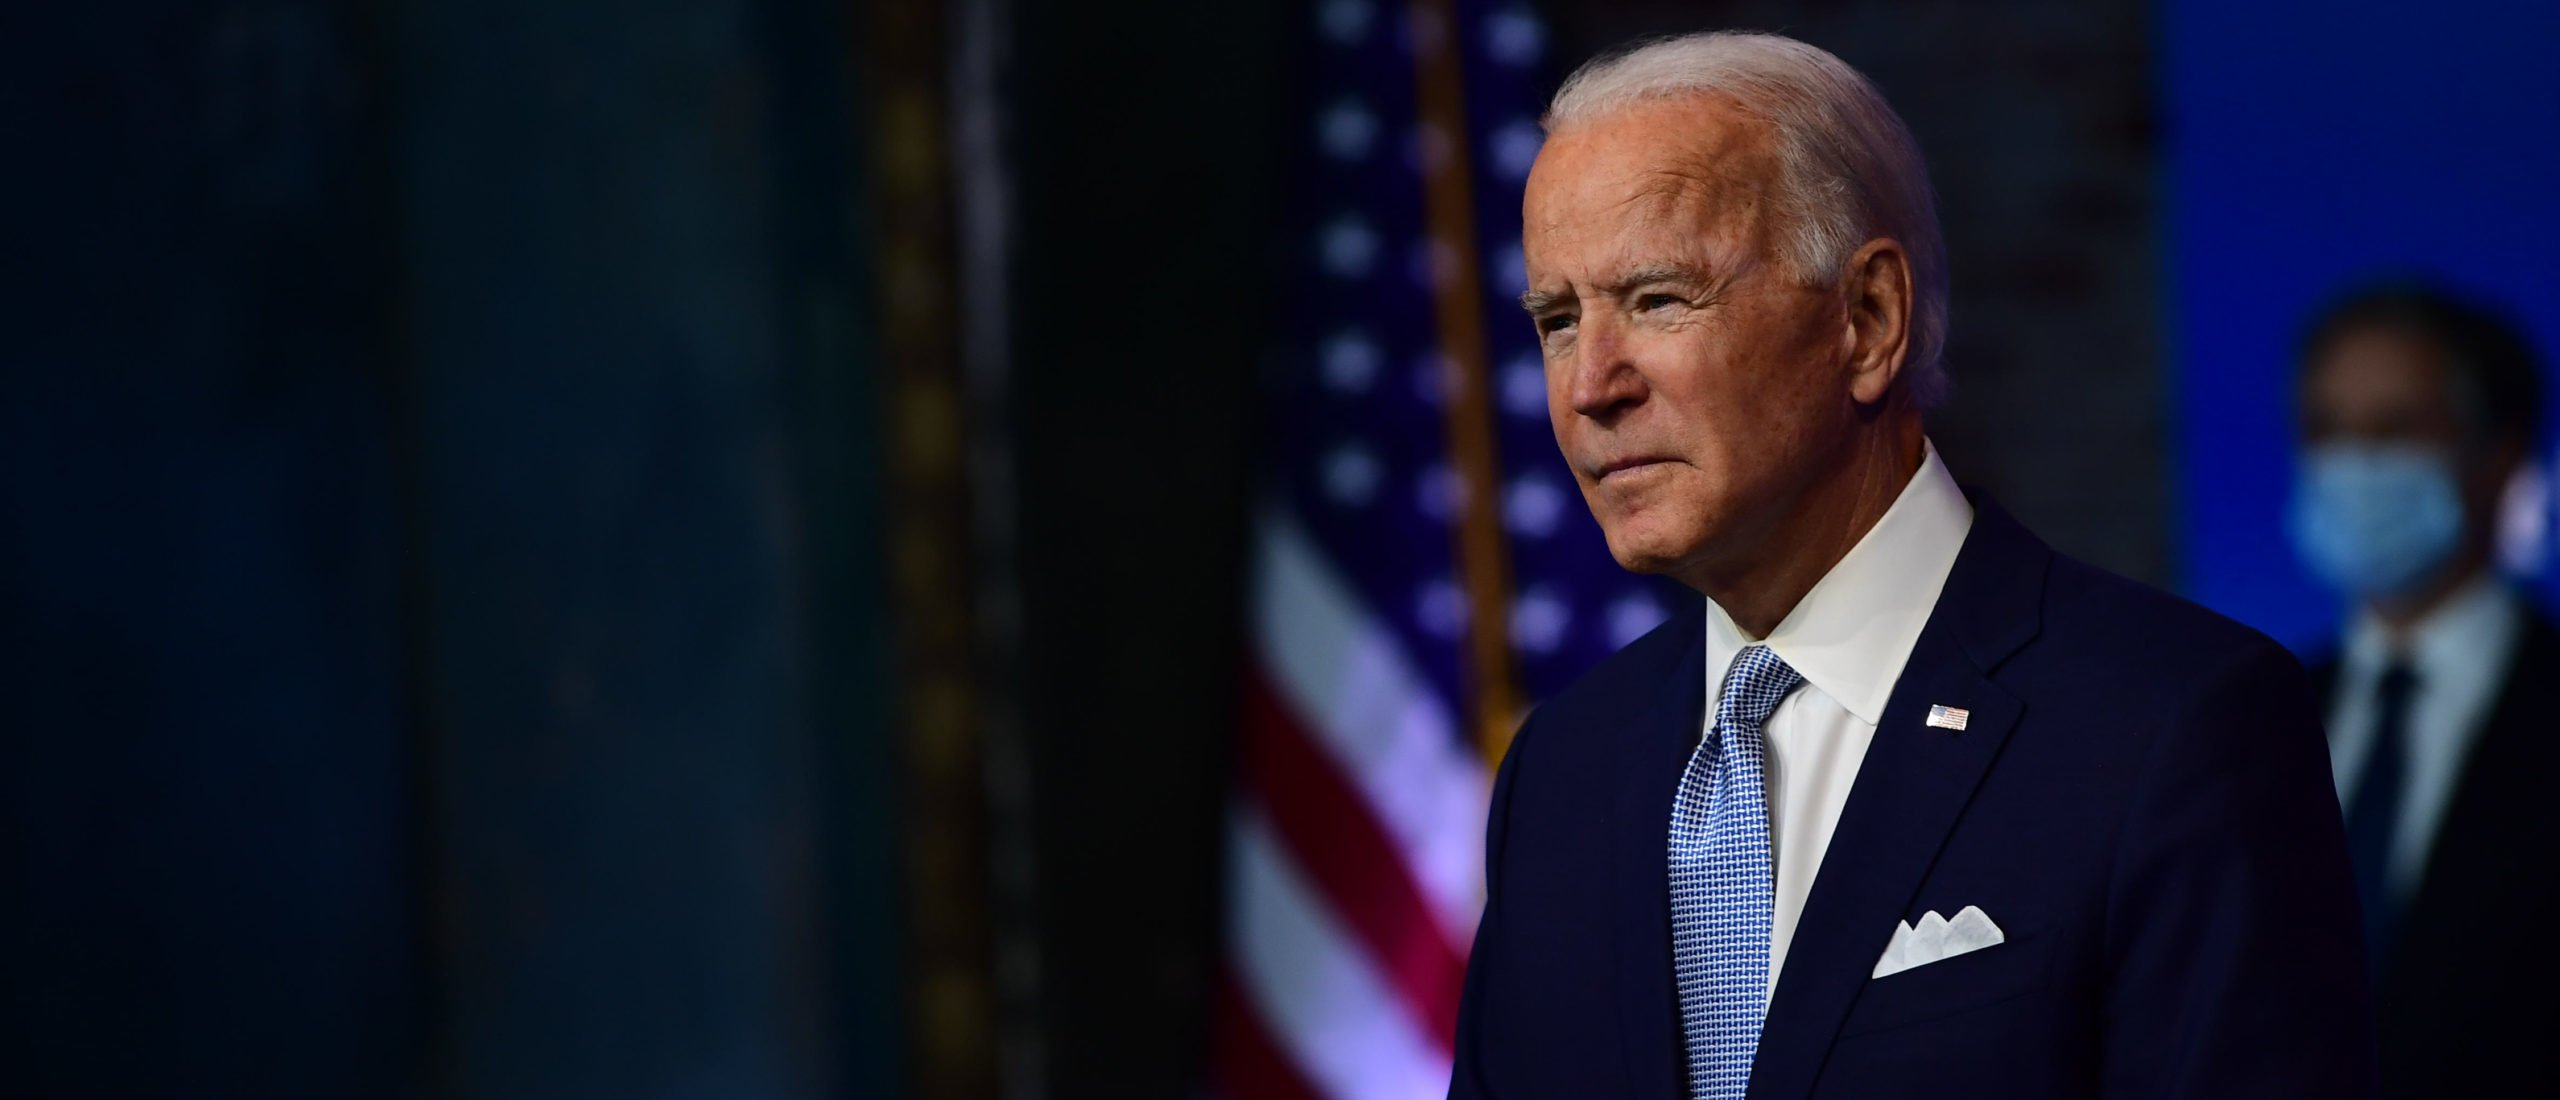 'It's A Disaster': Joe Biden's Gun Plan Could Bankrupt The Firearms Industry, Experts Say